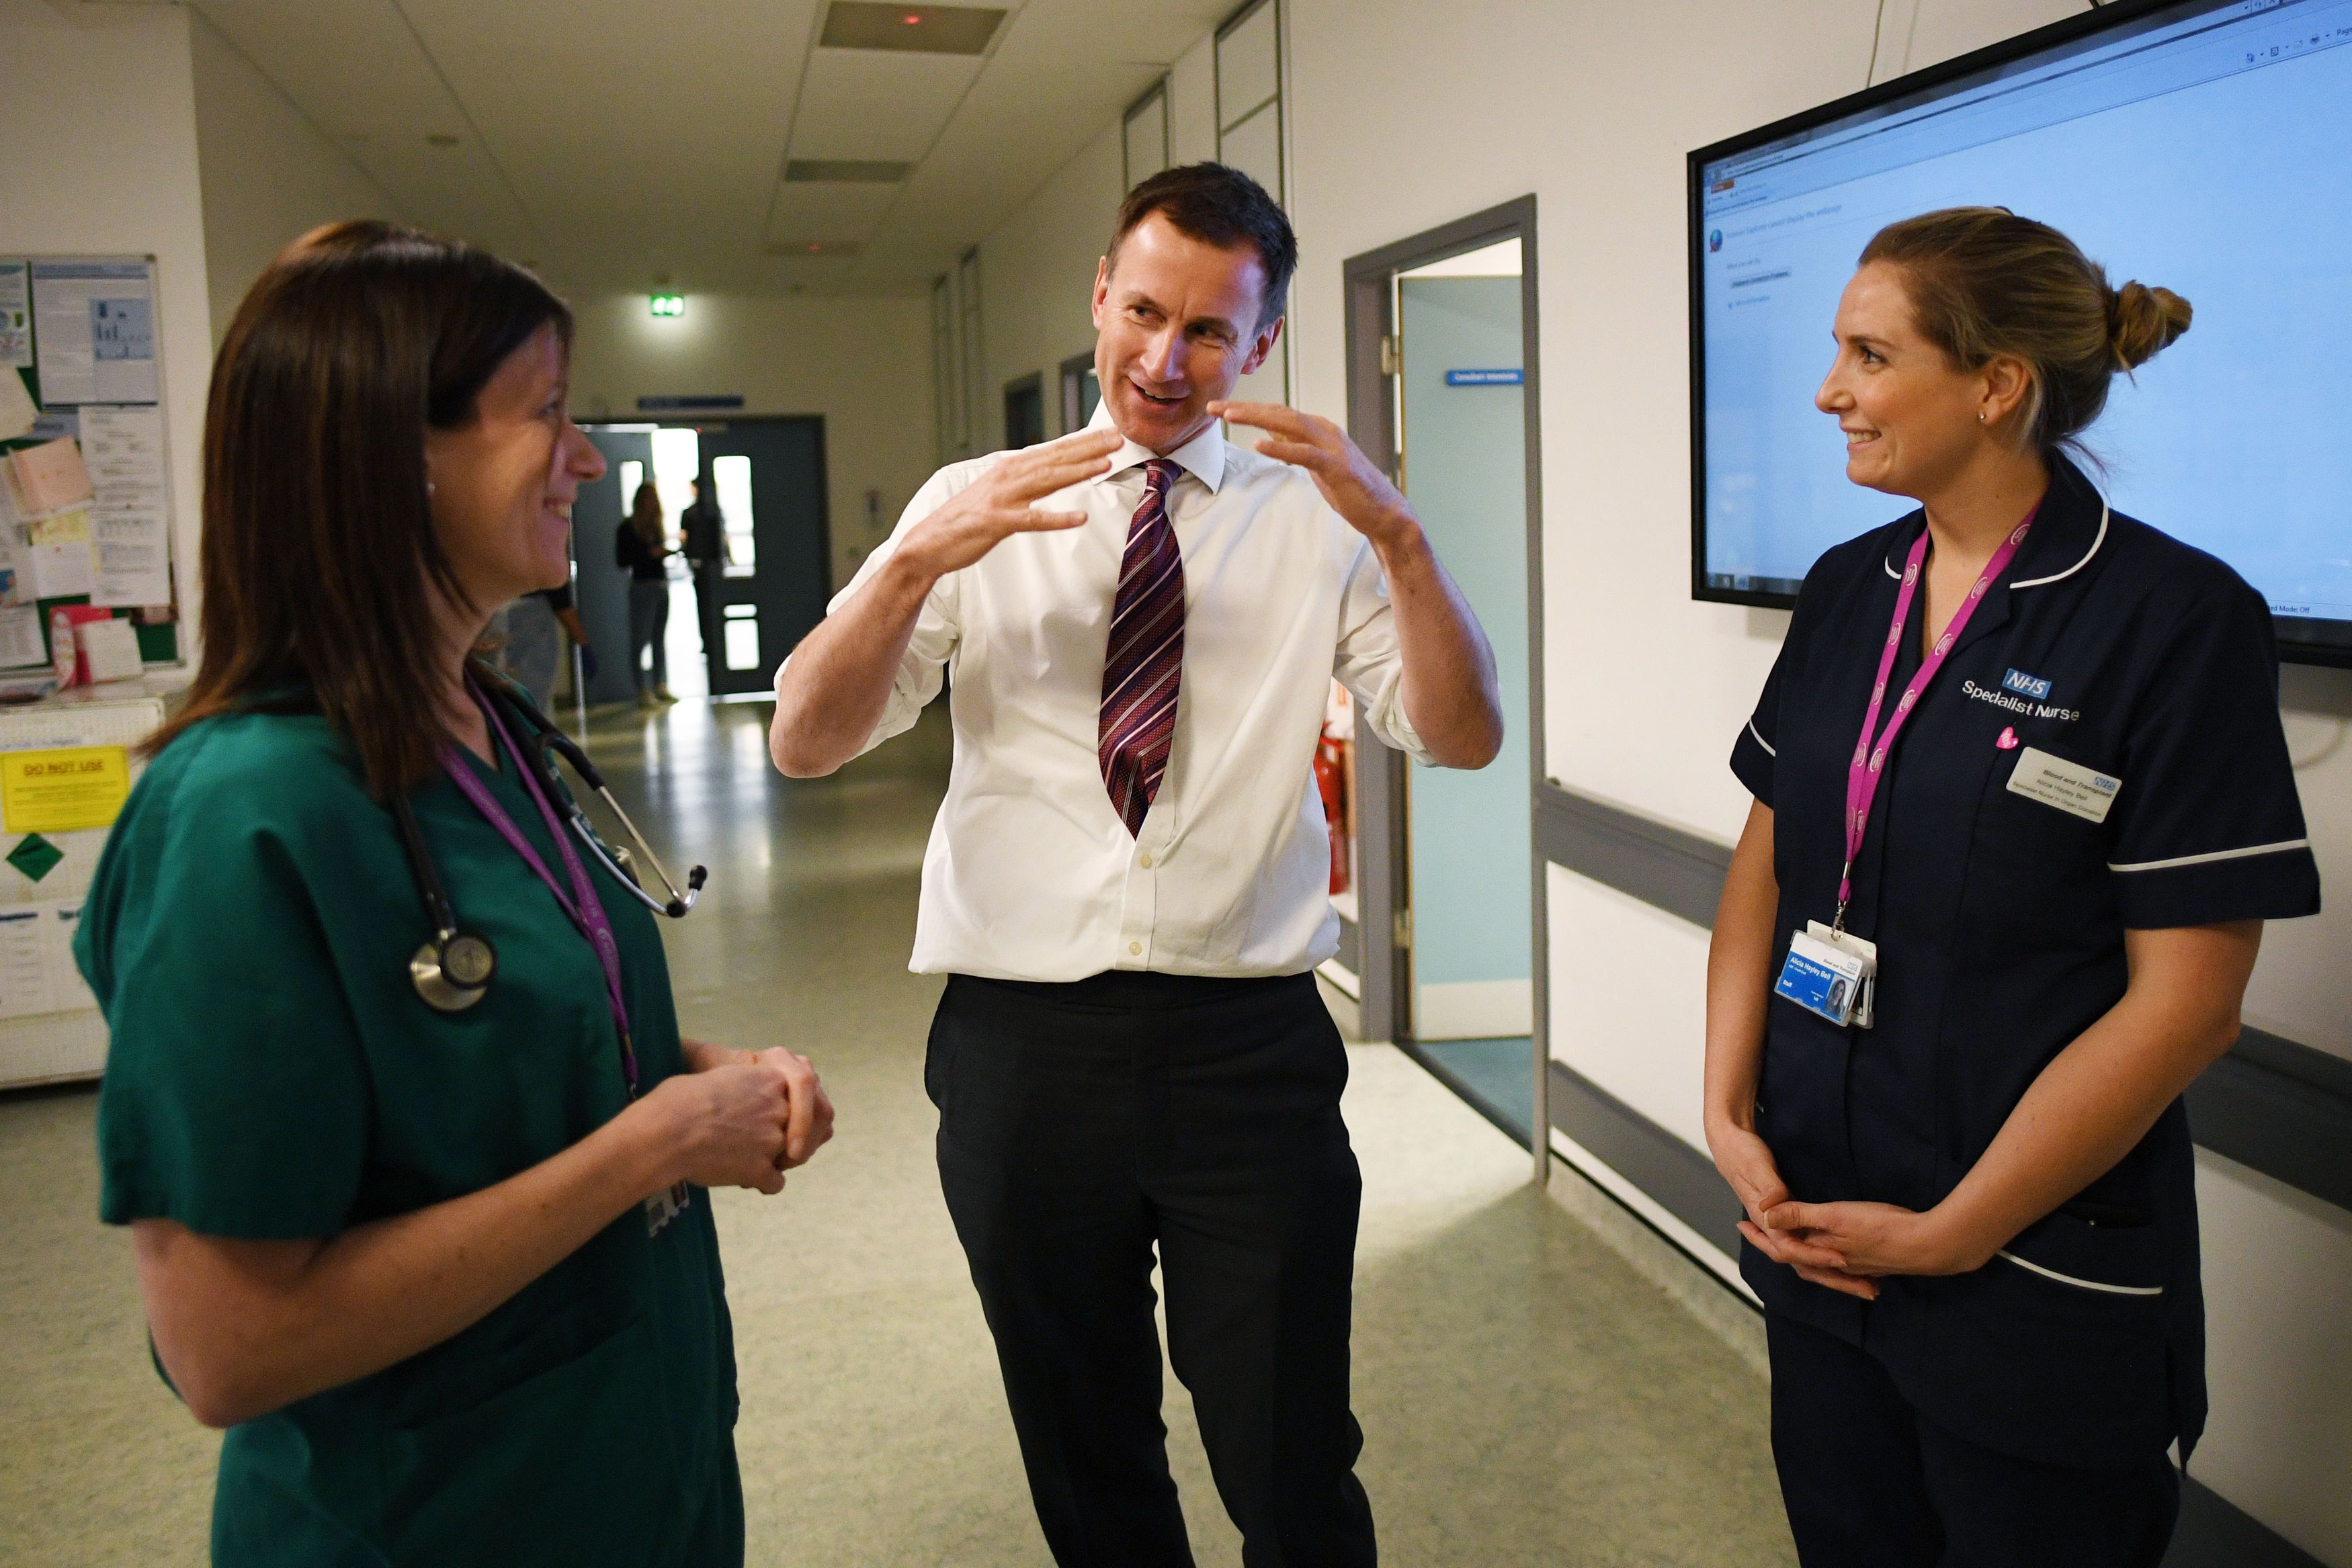 Jeremy Hunt talks to staff at St George's Hospital, Tooting.